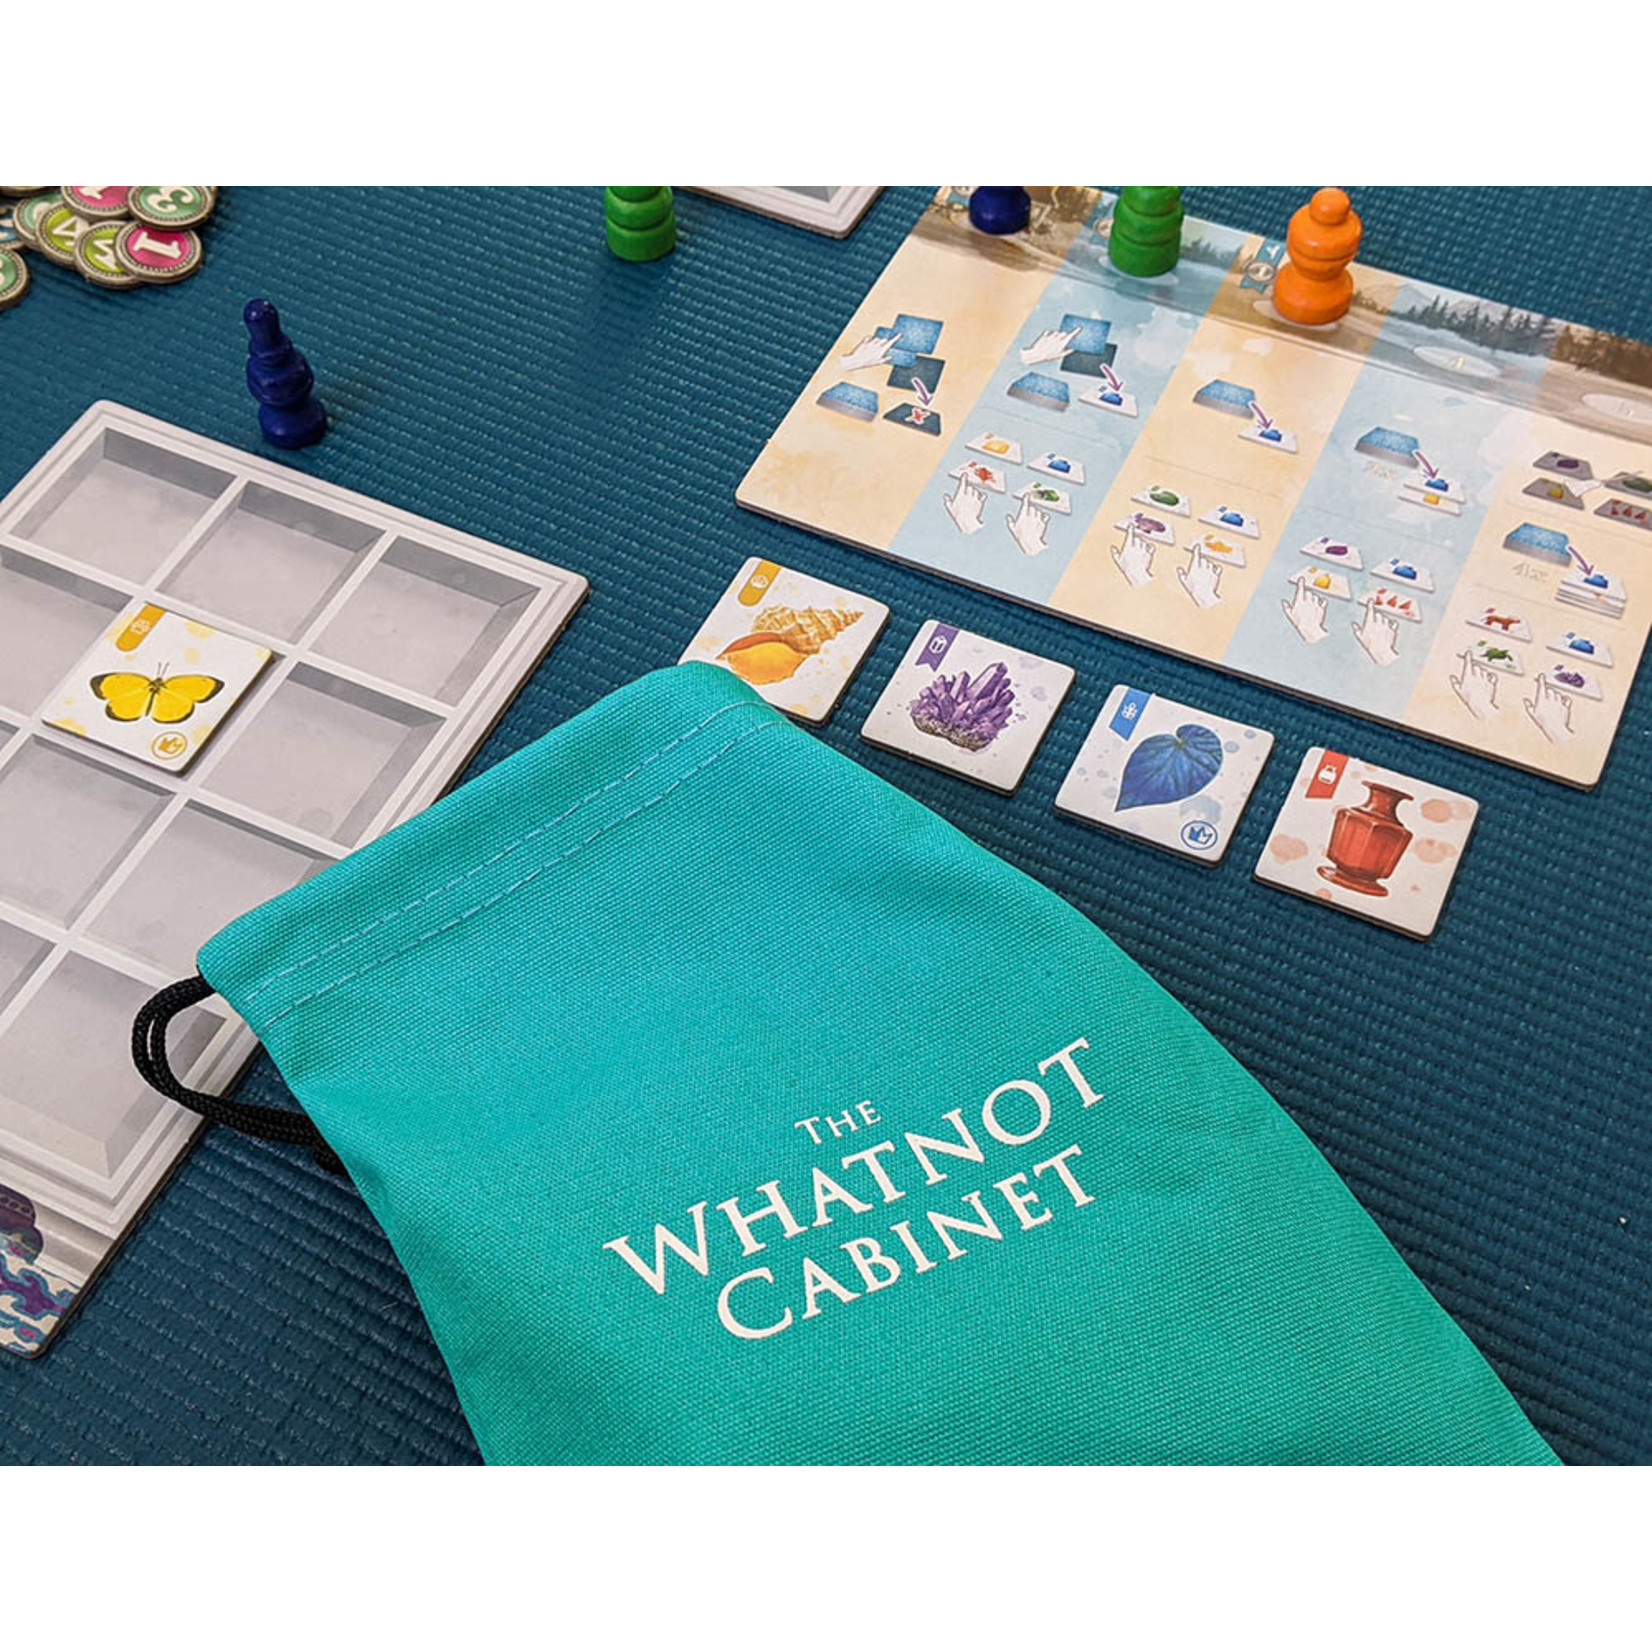 The Whatnot Cabinet